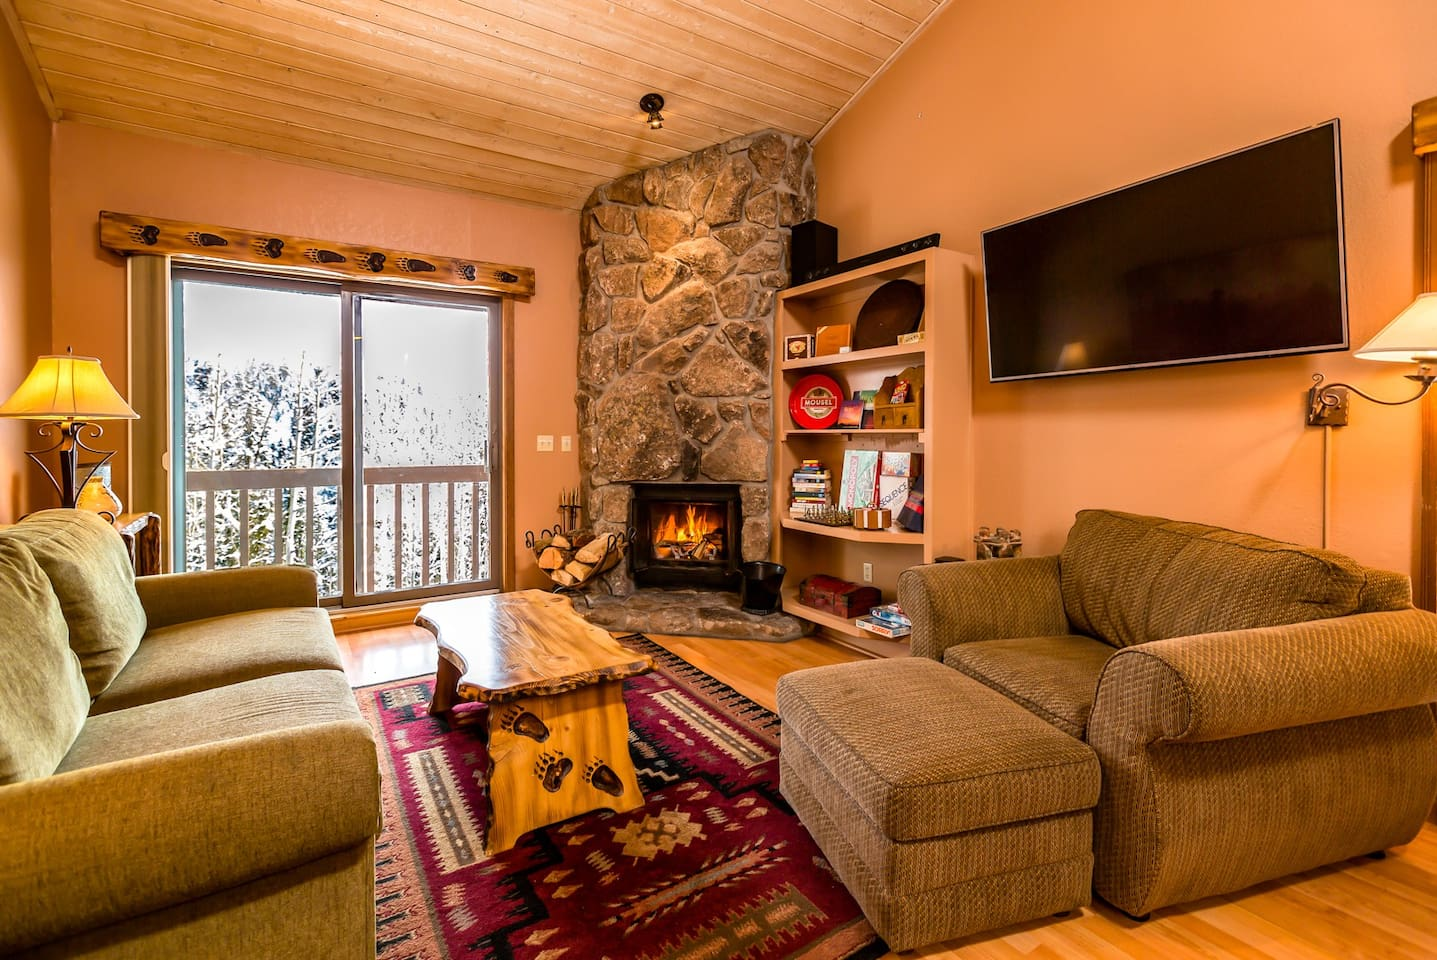 Living room has a 55 inch 4K Smart LED TV, 300 watt bluetooth LG soundbar, and stone and wood fireplace. Have HMDI cable to TV so you can watch your own downloaded movies!